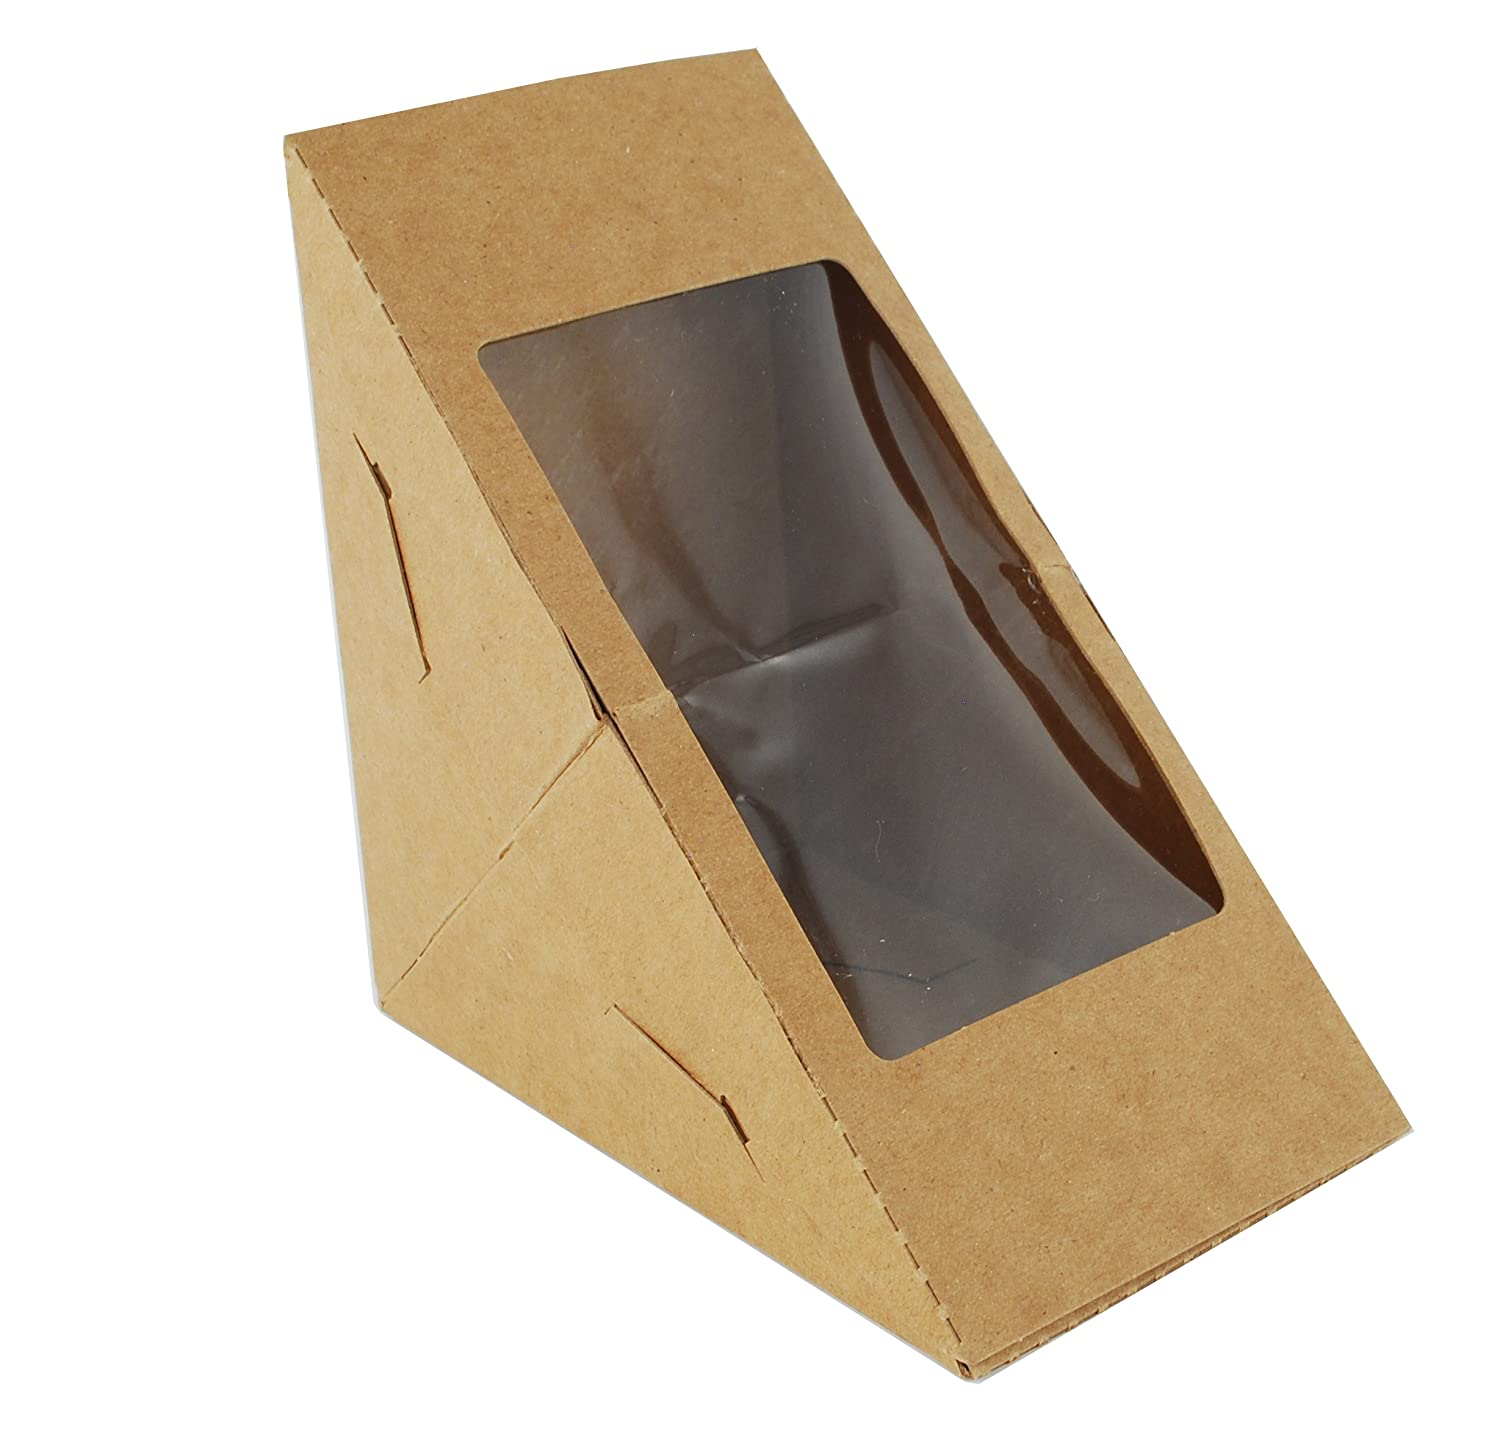 Southern Champion Tray 24103 Poly Coated Inside with Uncoated Recycled Paperboard Window Sandwich Wedge, 6-13/16